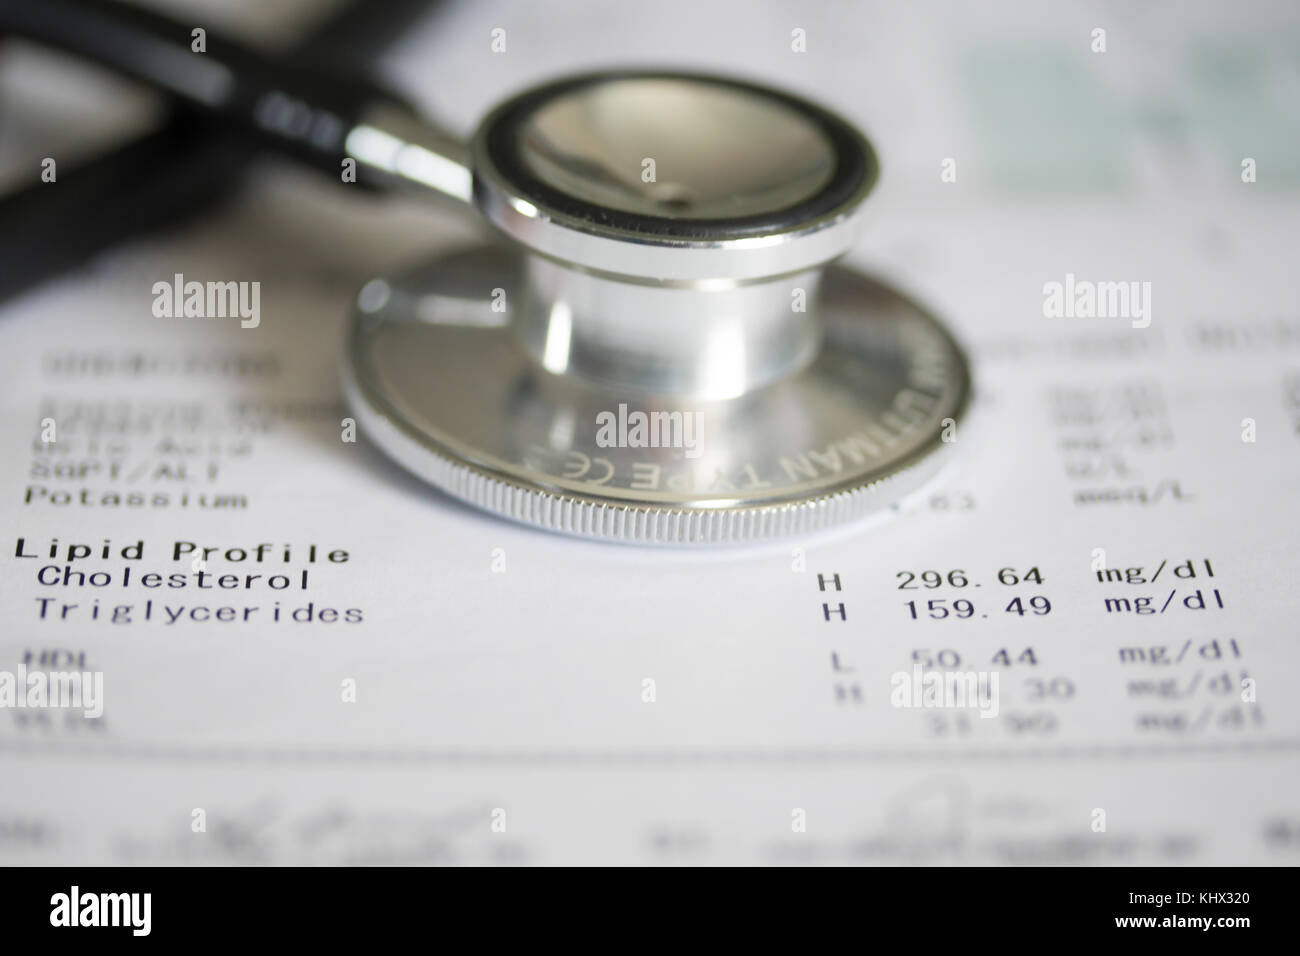 Concept Image of health featuring a printout with medical results relating to Cholesterol & Triglyceride levels. - Stock Image